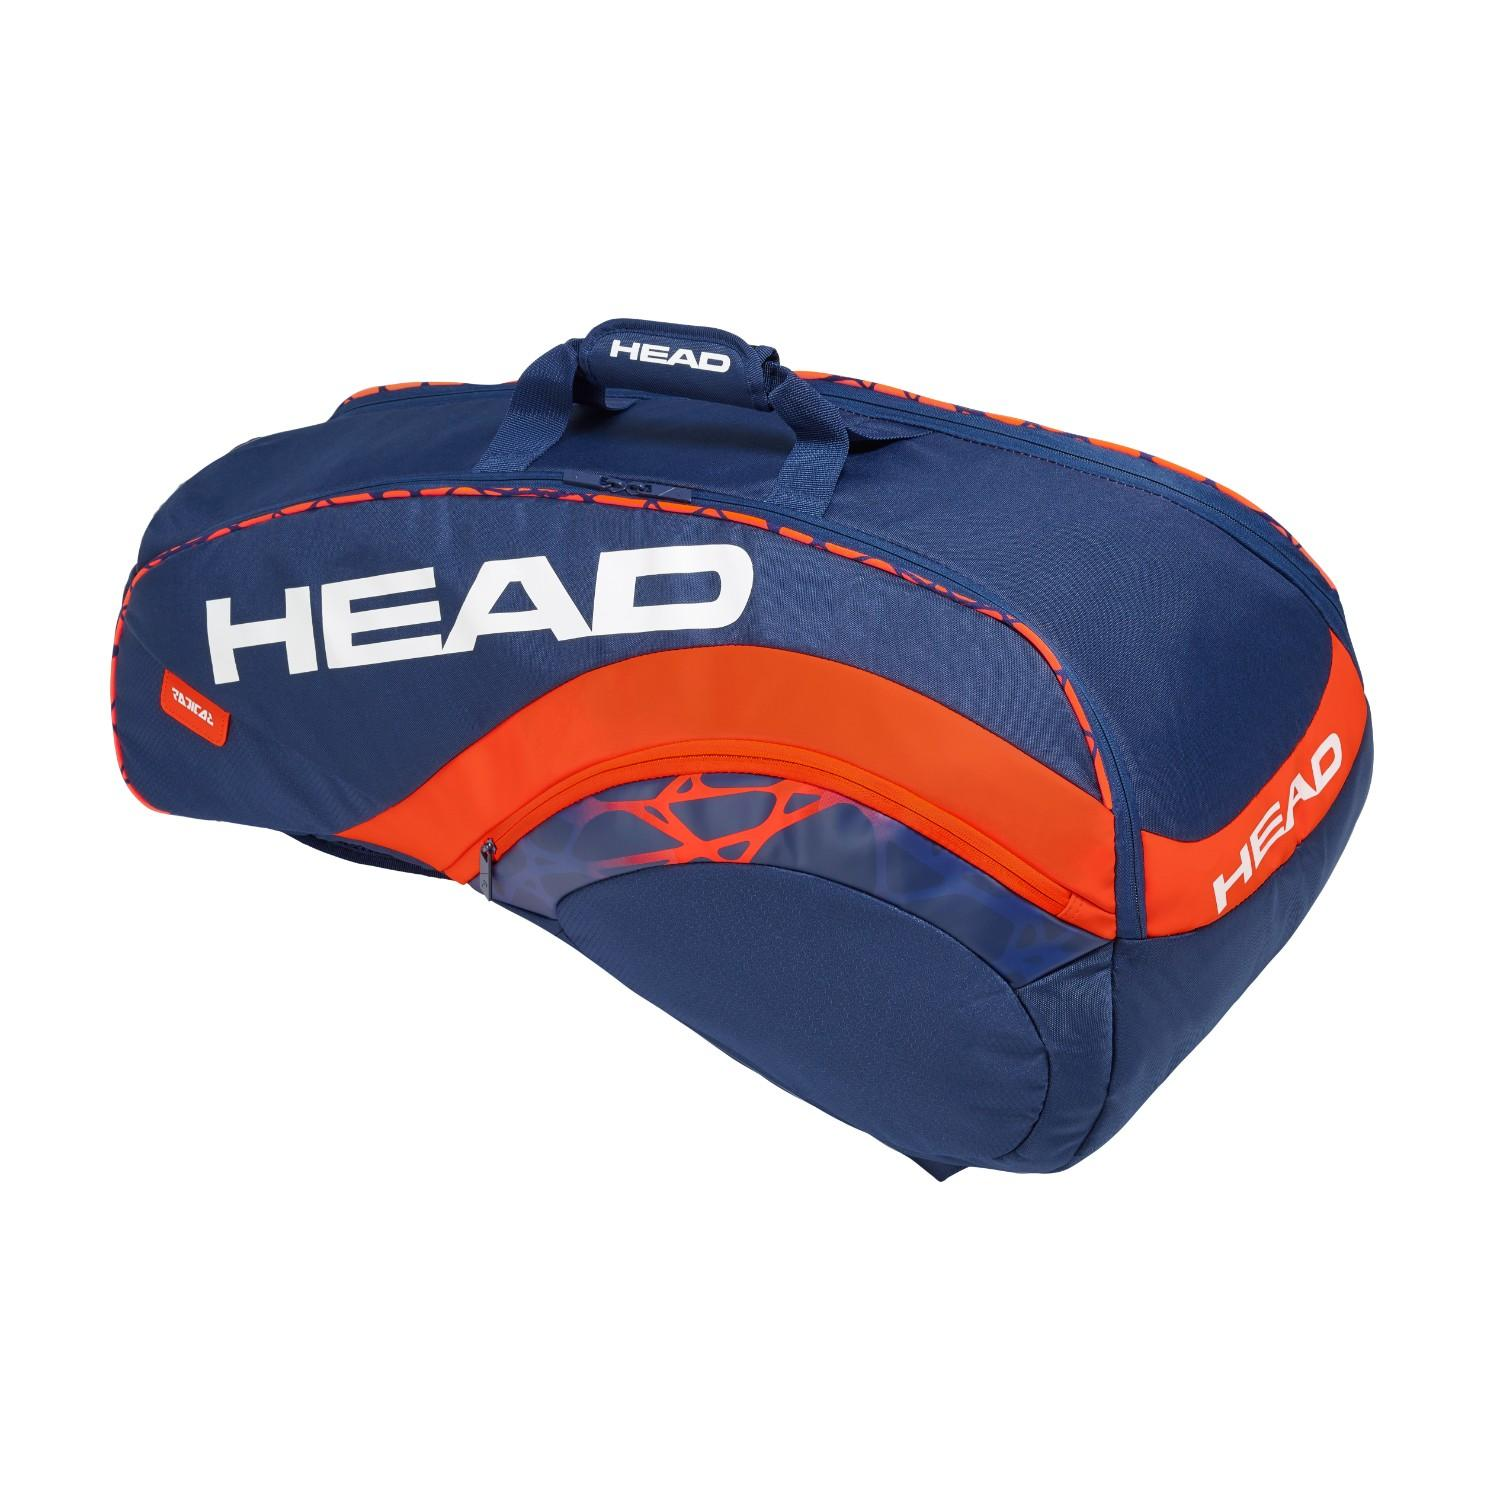 Head Radical Supercombi 9 Rackets Tennis Bag By Head.